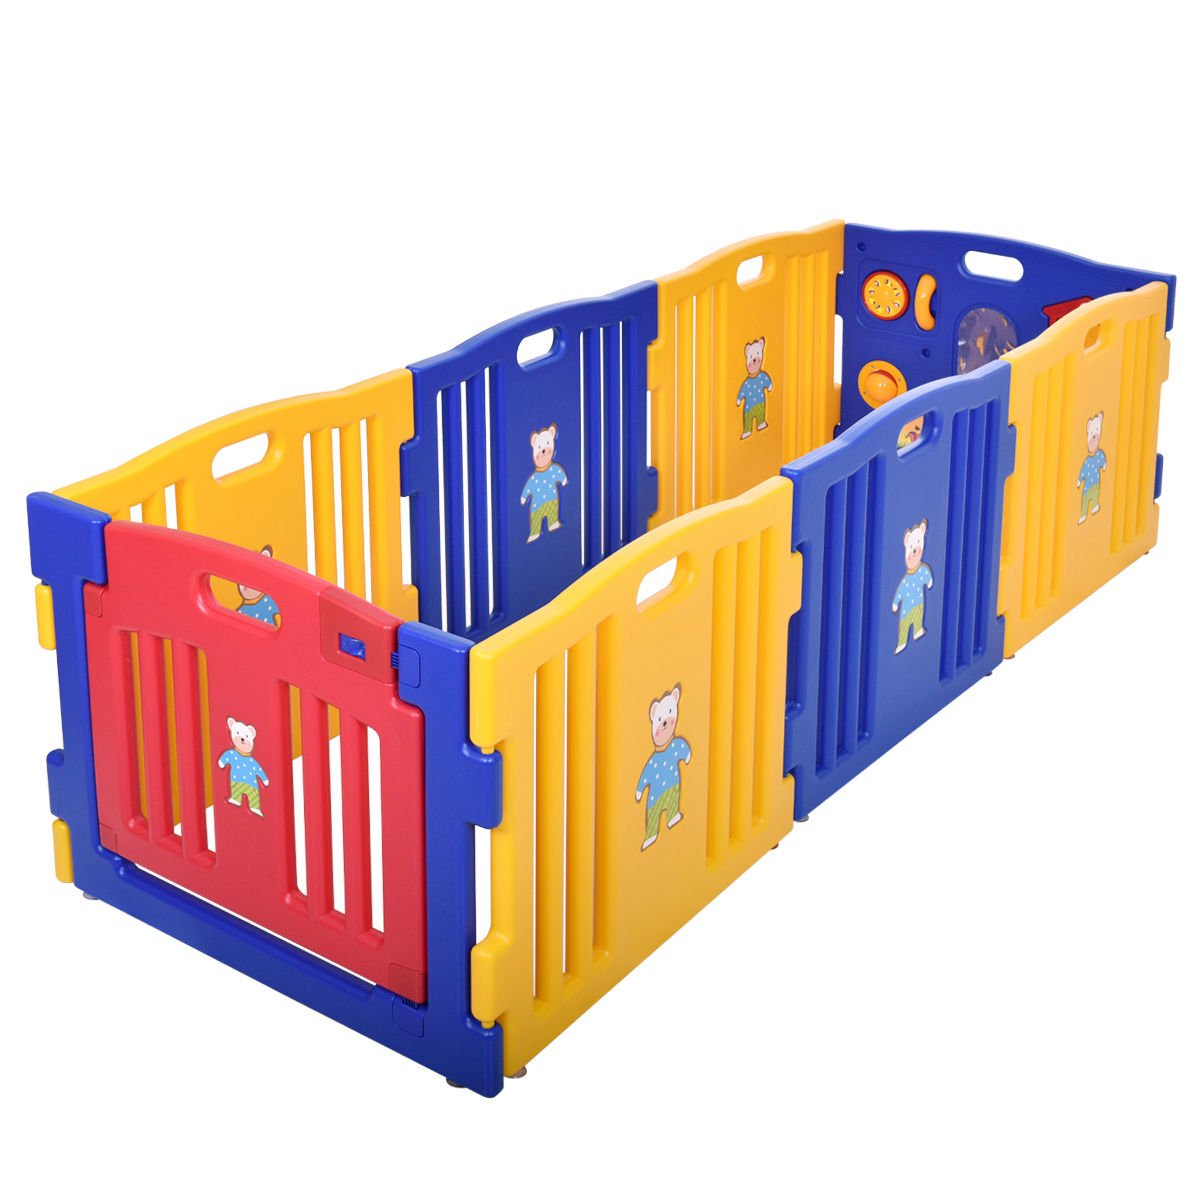 New 8 Panel Safety Play Center Baby Playpen Kids Yard Home Indoor Outdoor Pen by Eade shop (Image #4)